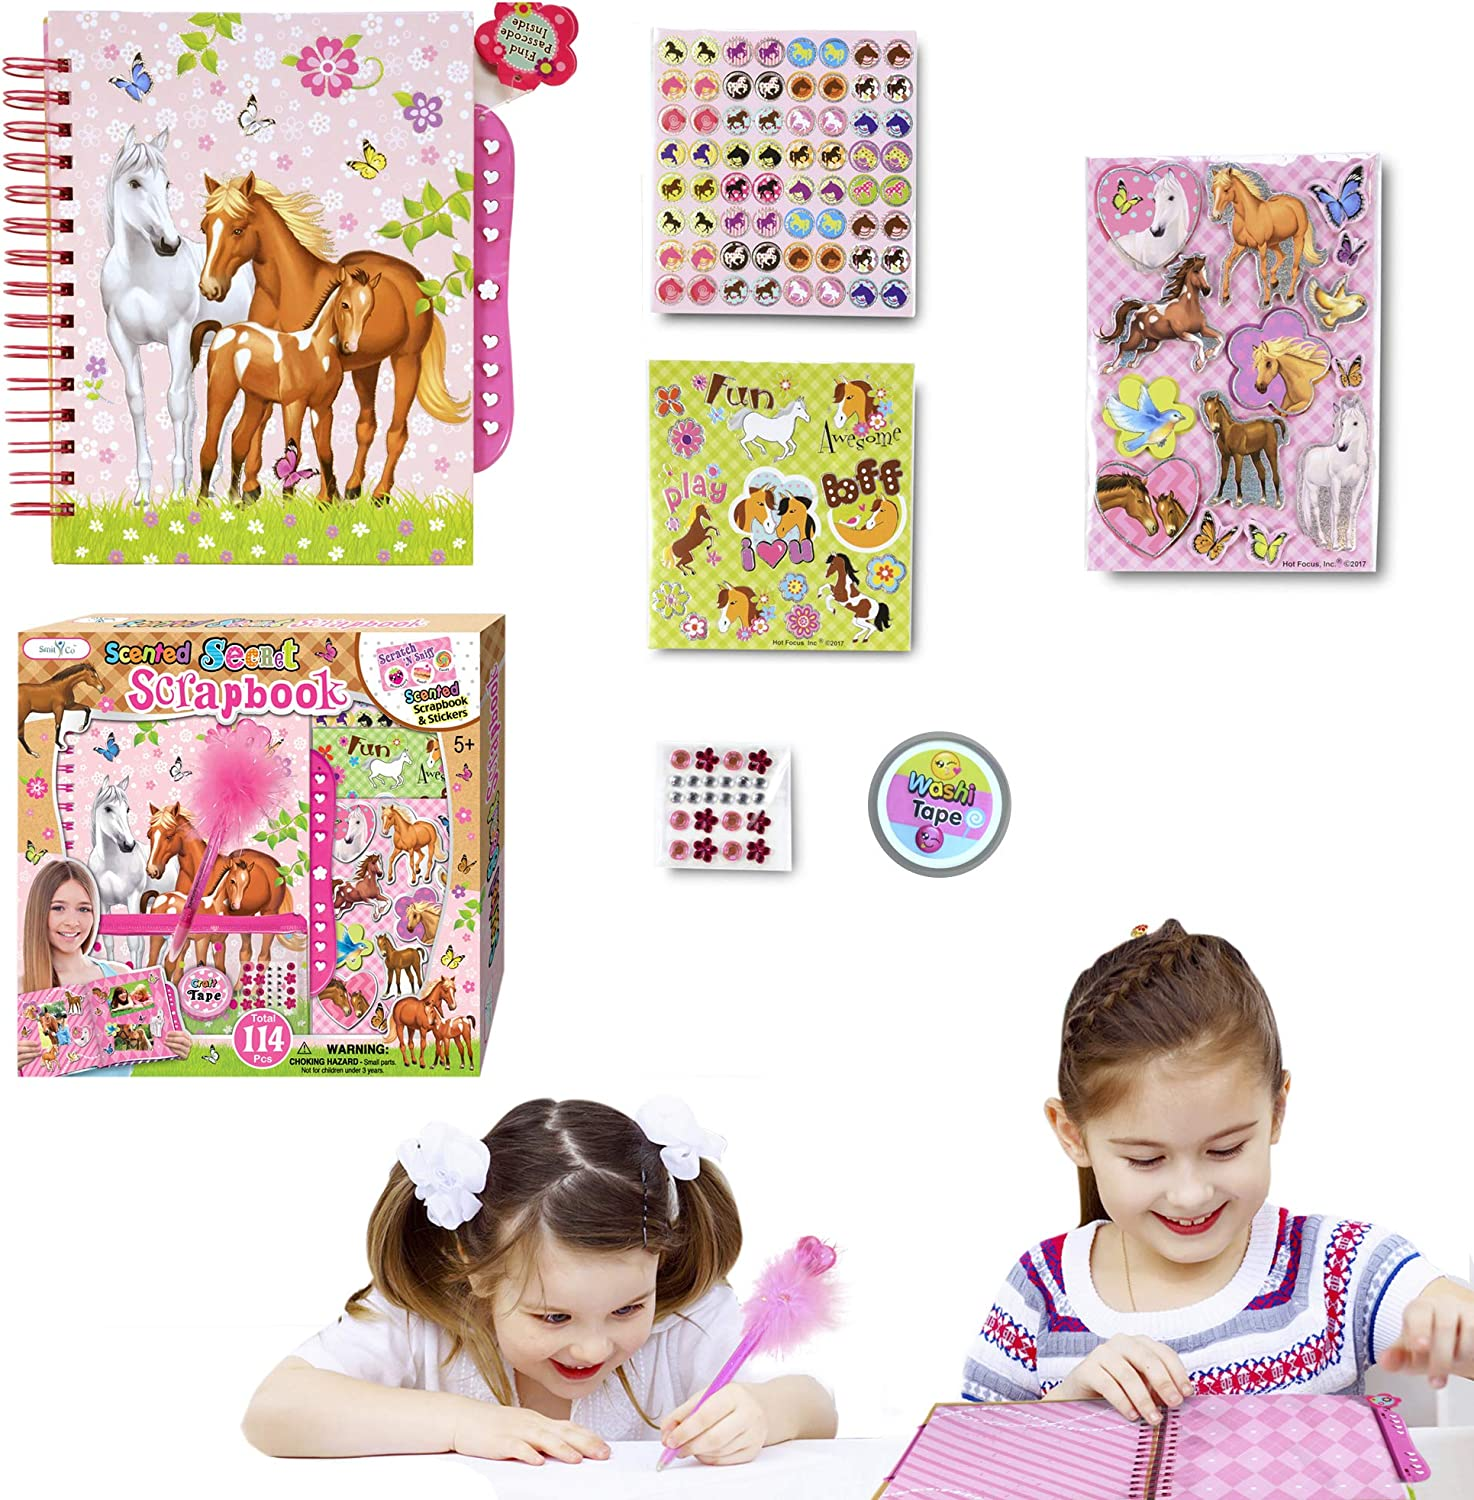 Jewels Hot Focus Scented Secret Scrapbook for Arts and Crafts Project Set//Kit Scented 3D Stickers Includes a 60 Page Album with Passcode Lock Great for Kids//Girls//Tween.